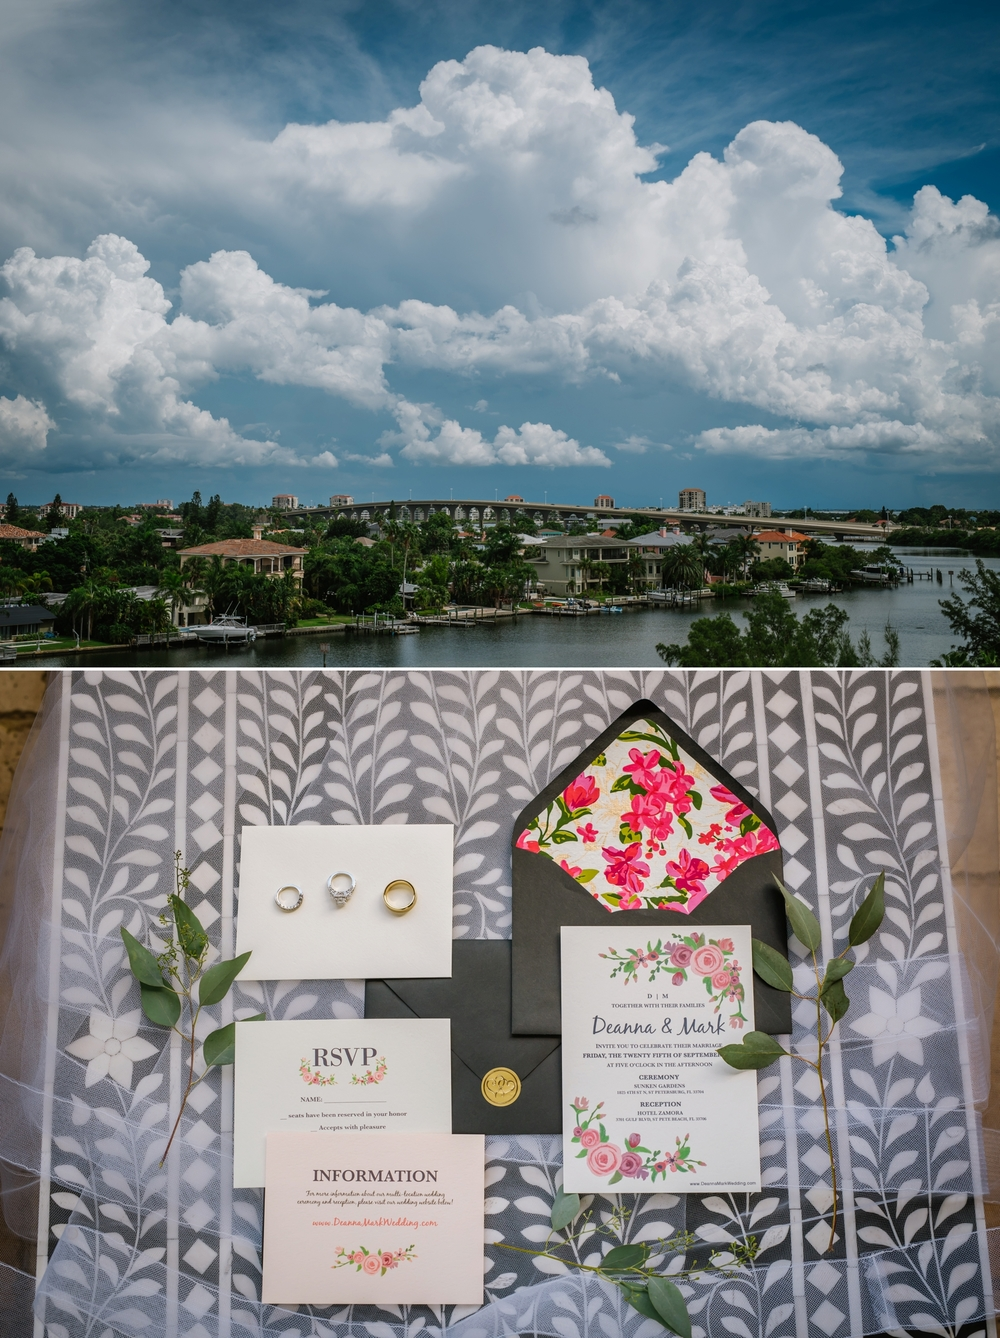 st-pete-hotel-zamora-sunken-gardens-rooftop-wedding-photography_0001.jpg